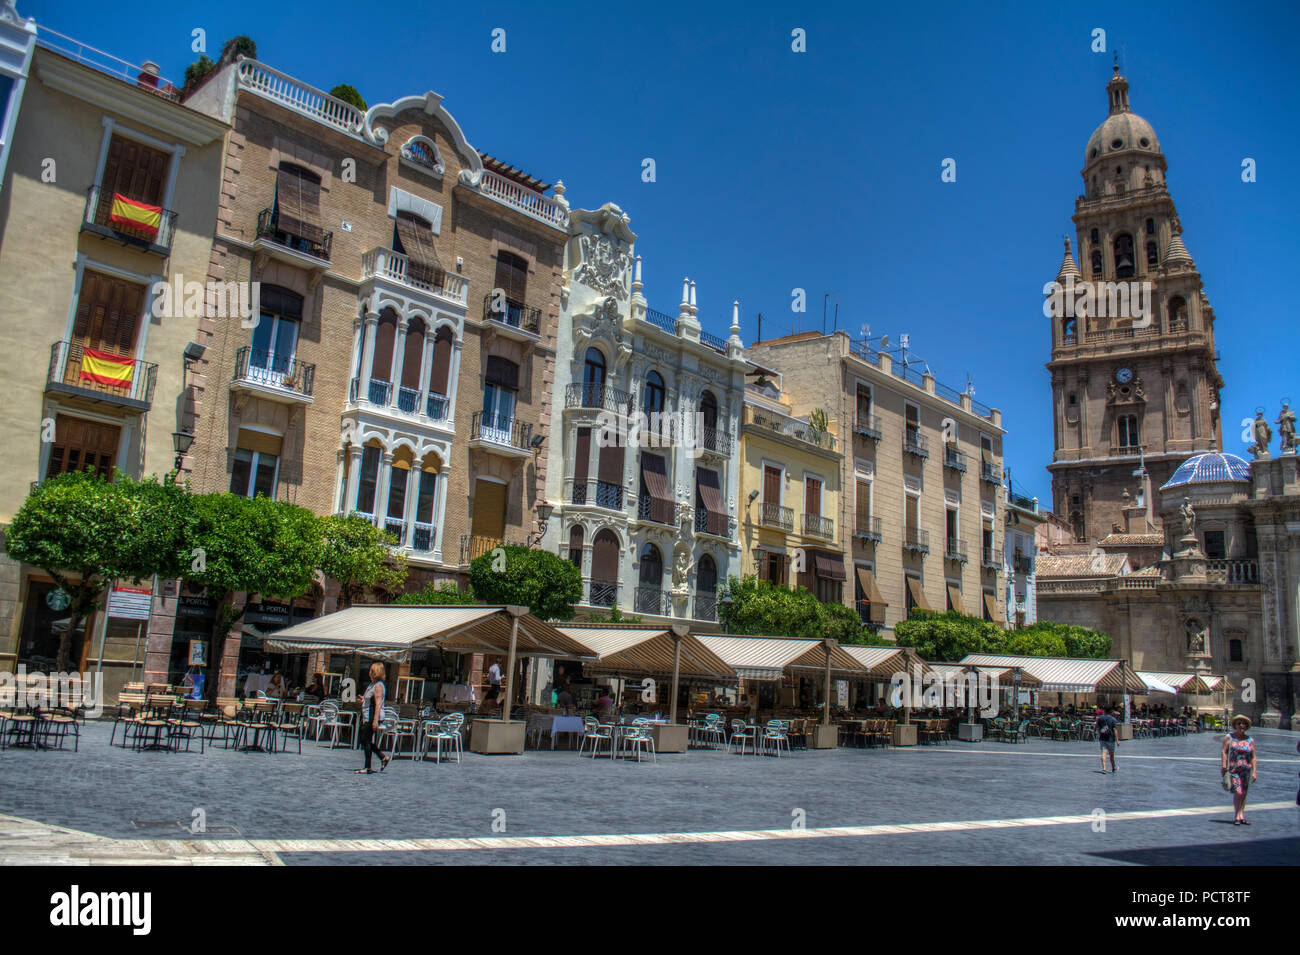 HDR image of the Plaza del Cardenal Belluga with apartments and Bell Tower, Murcia Spain Stock Photo